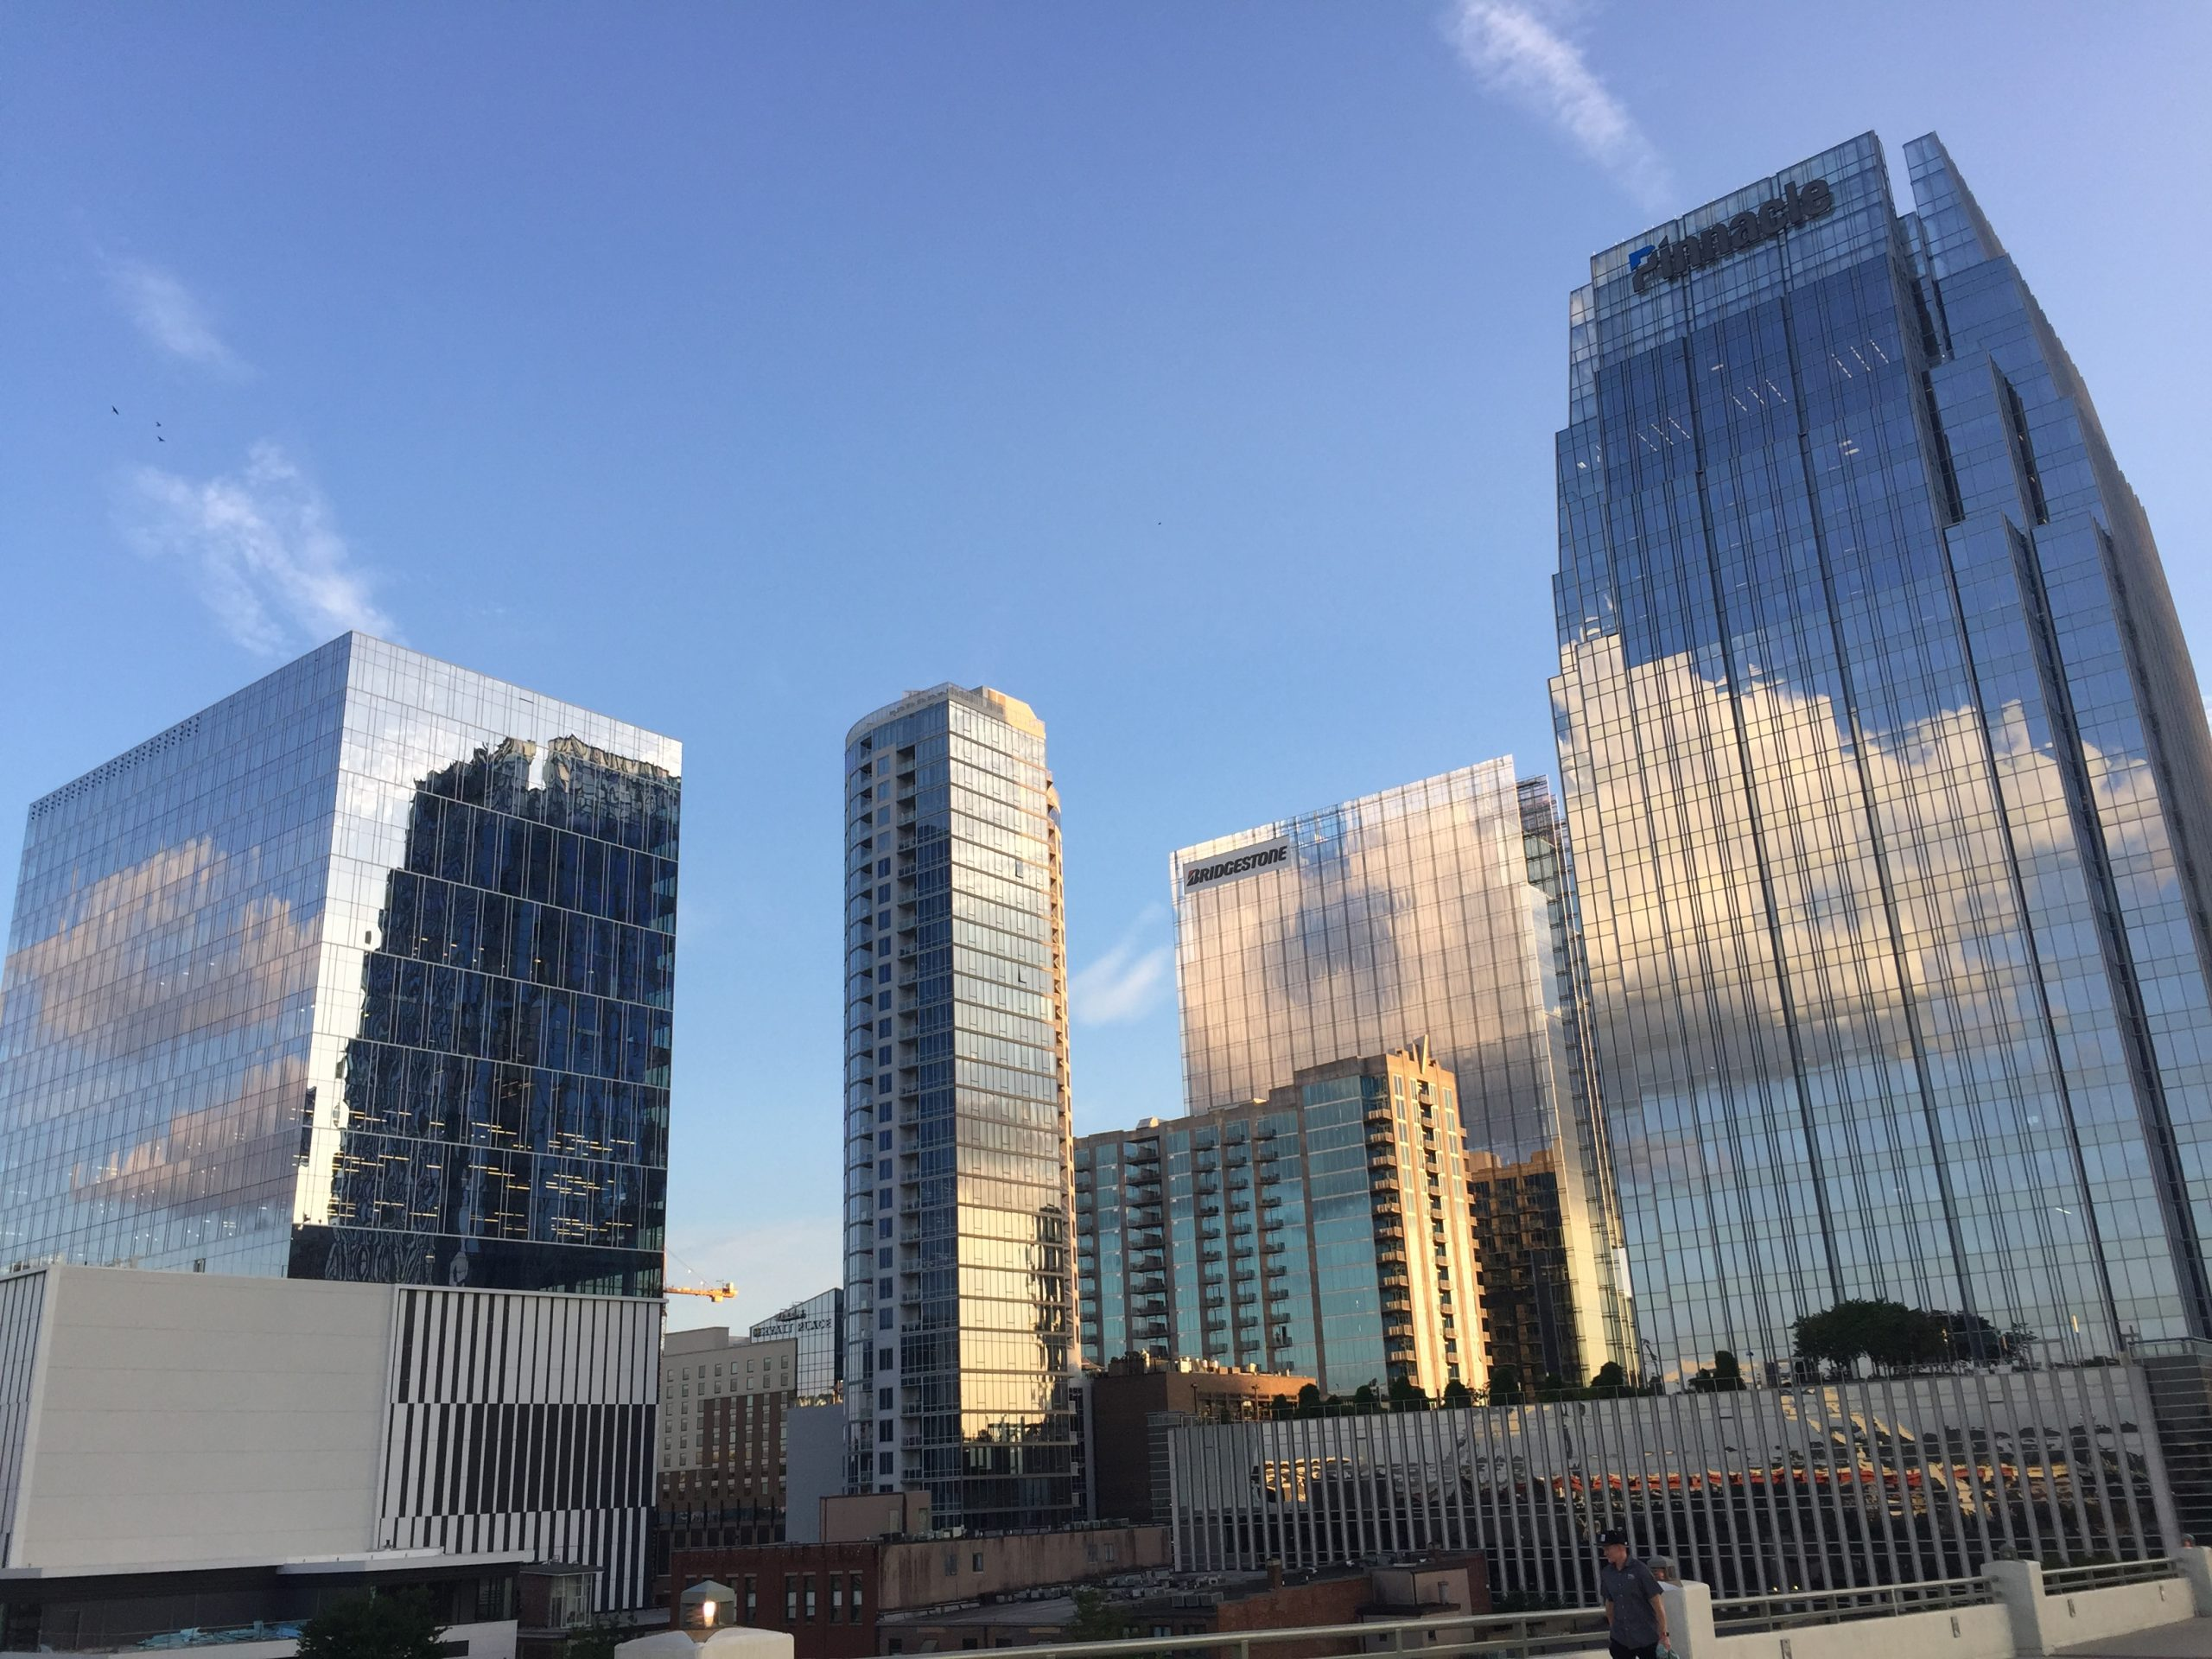 blue sky with buildings reflecting clouds